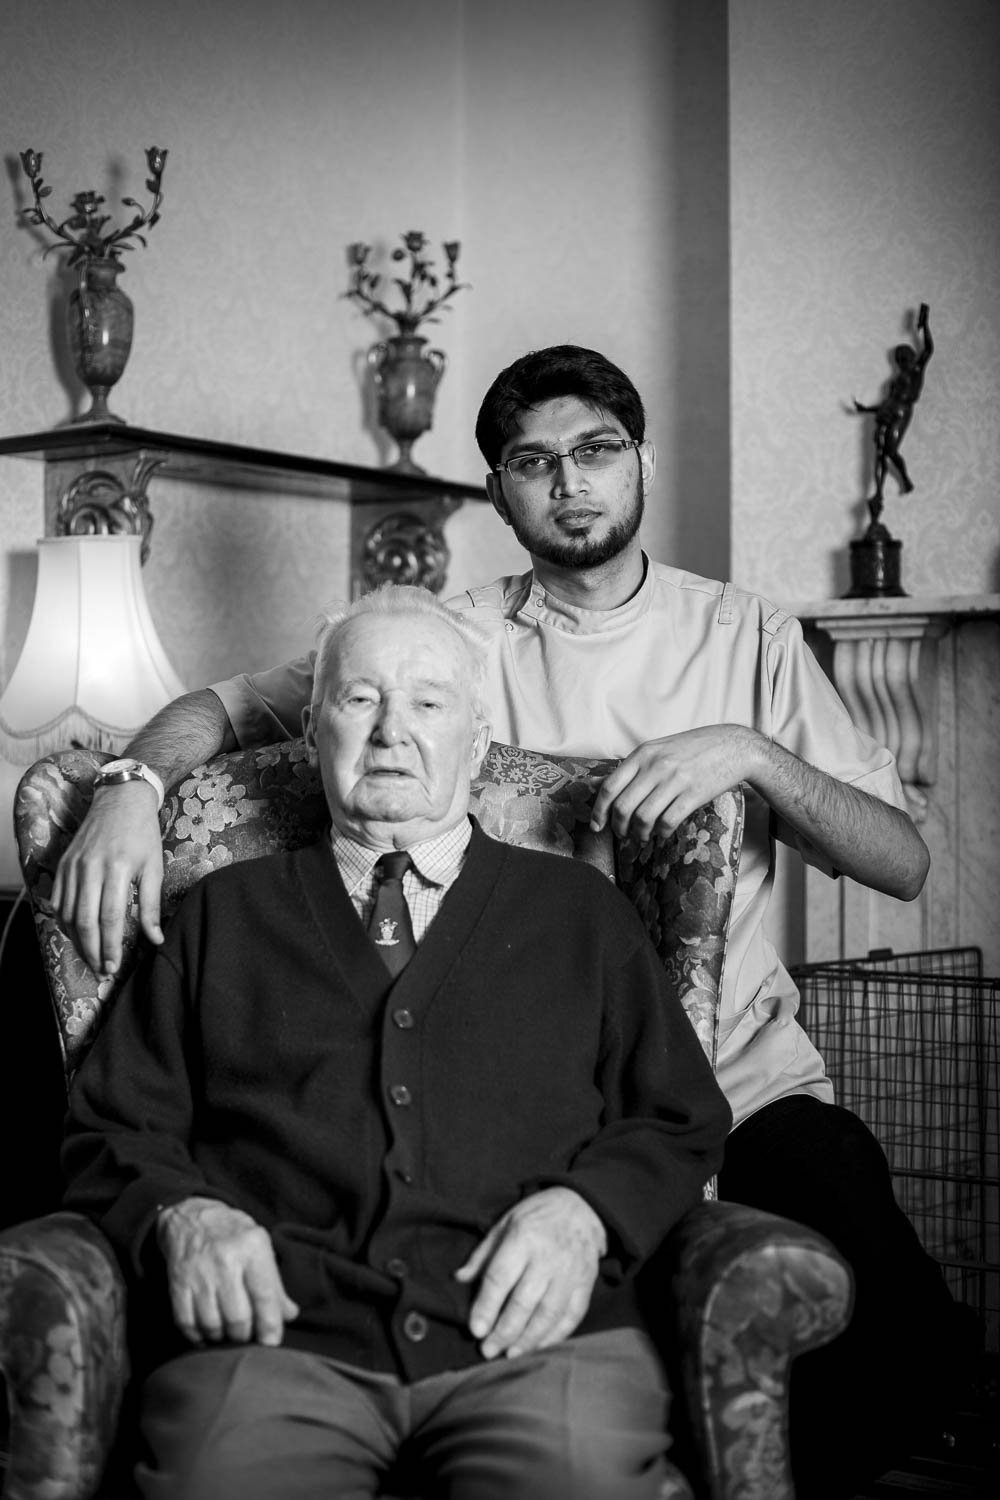 Migrant Worker with resident of care home